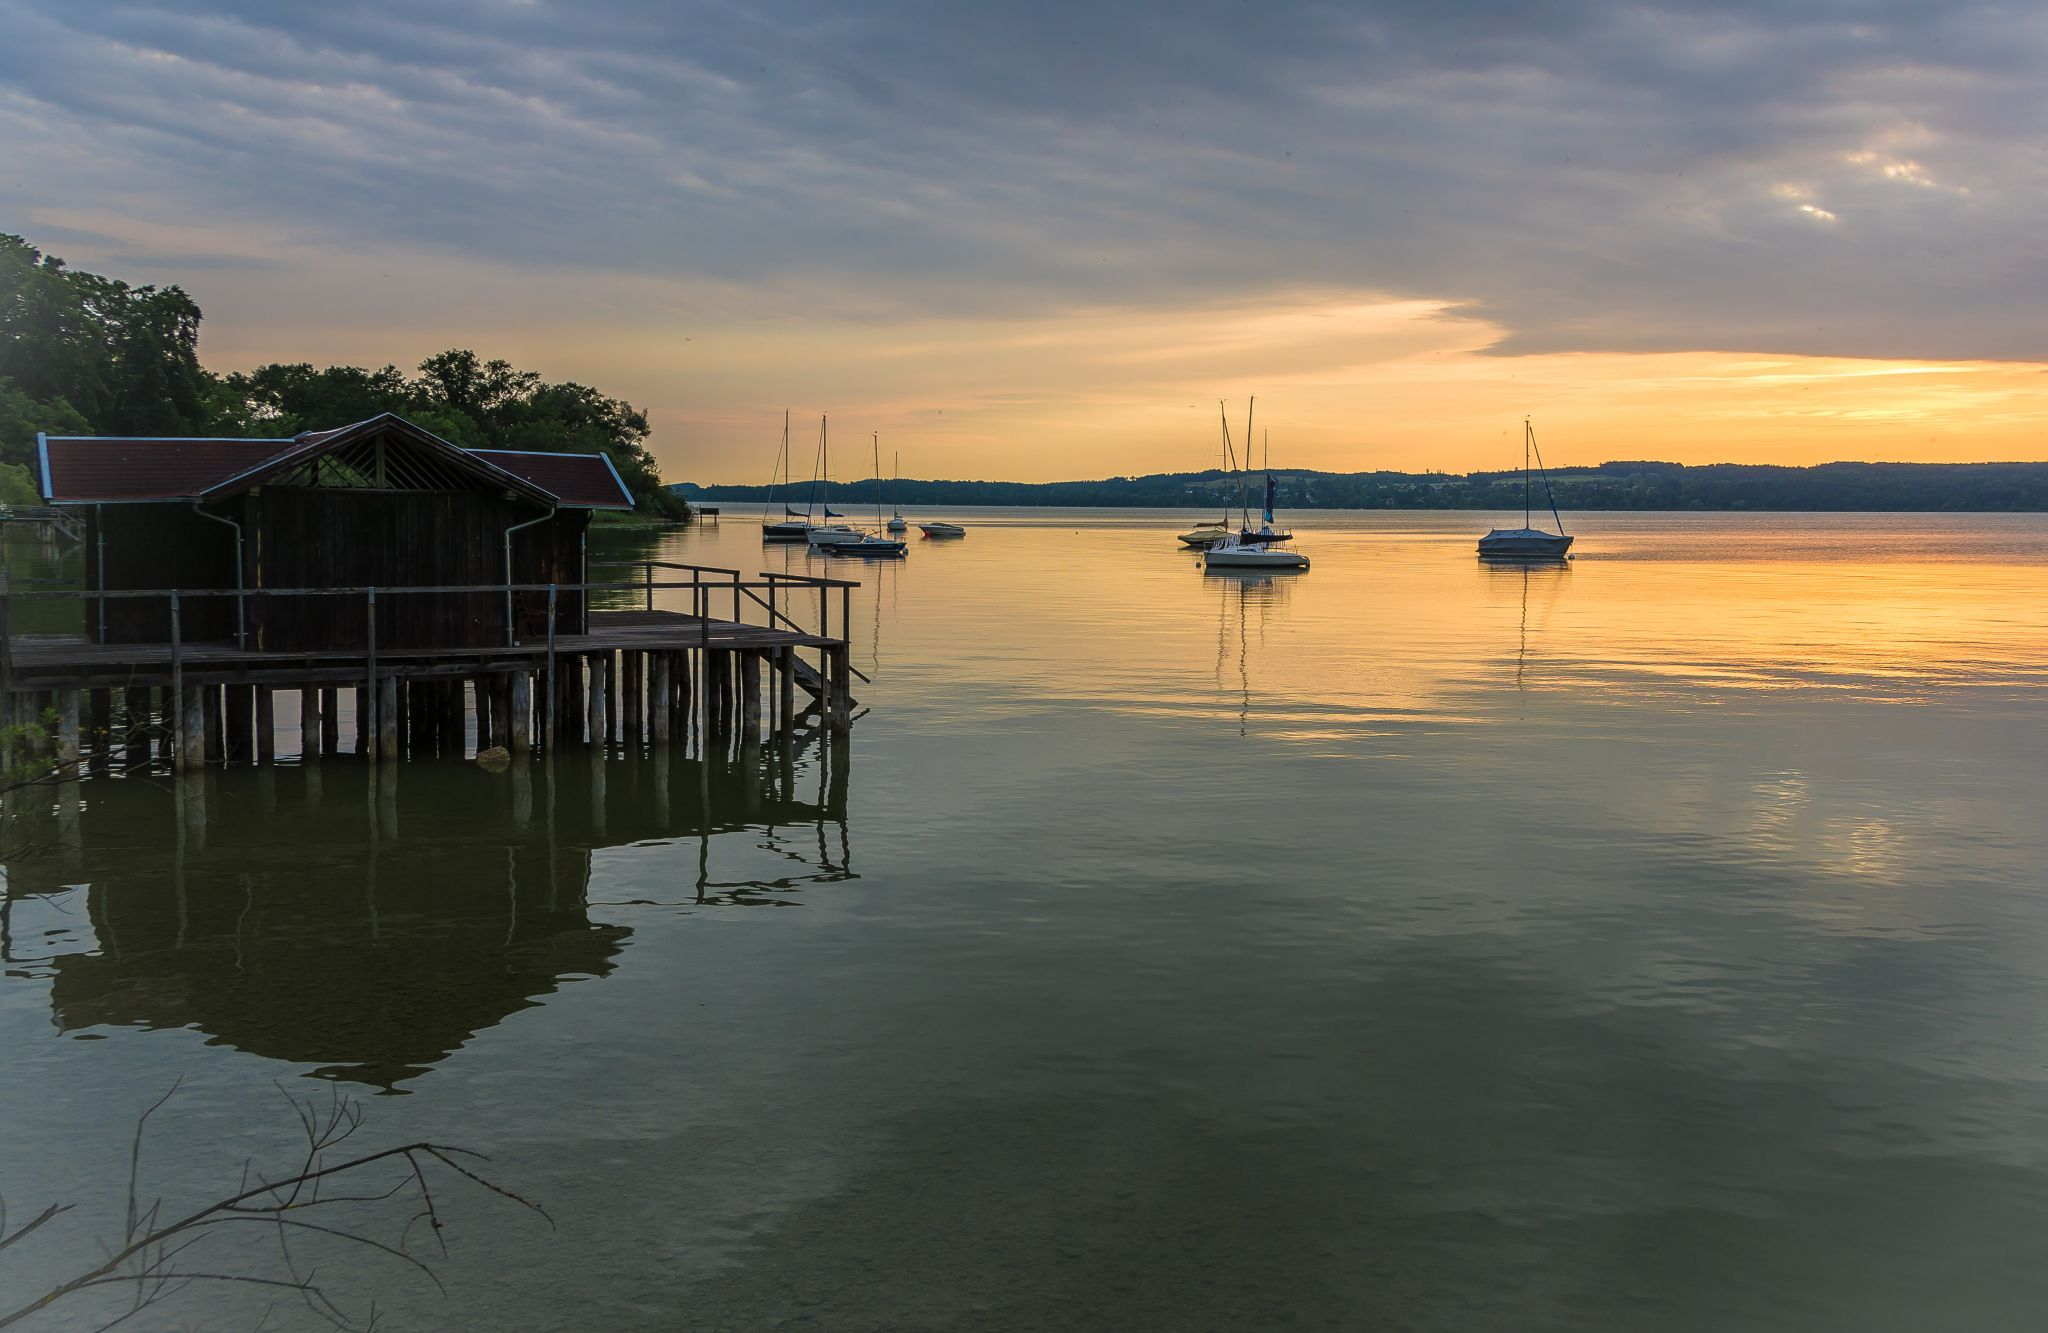 Holzhausen am Ammersee, Germany